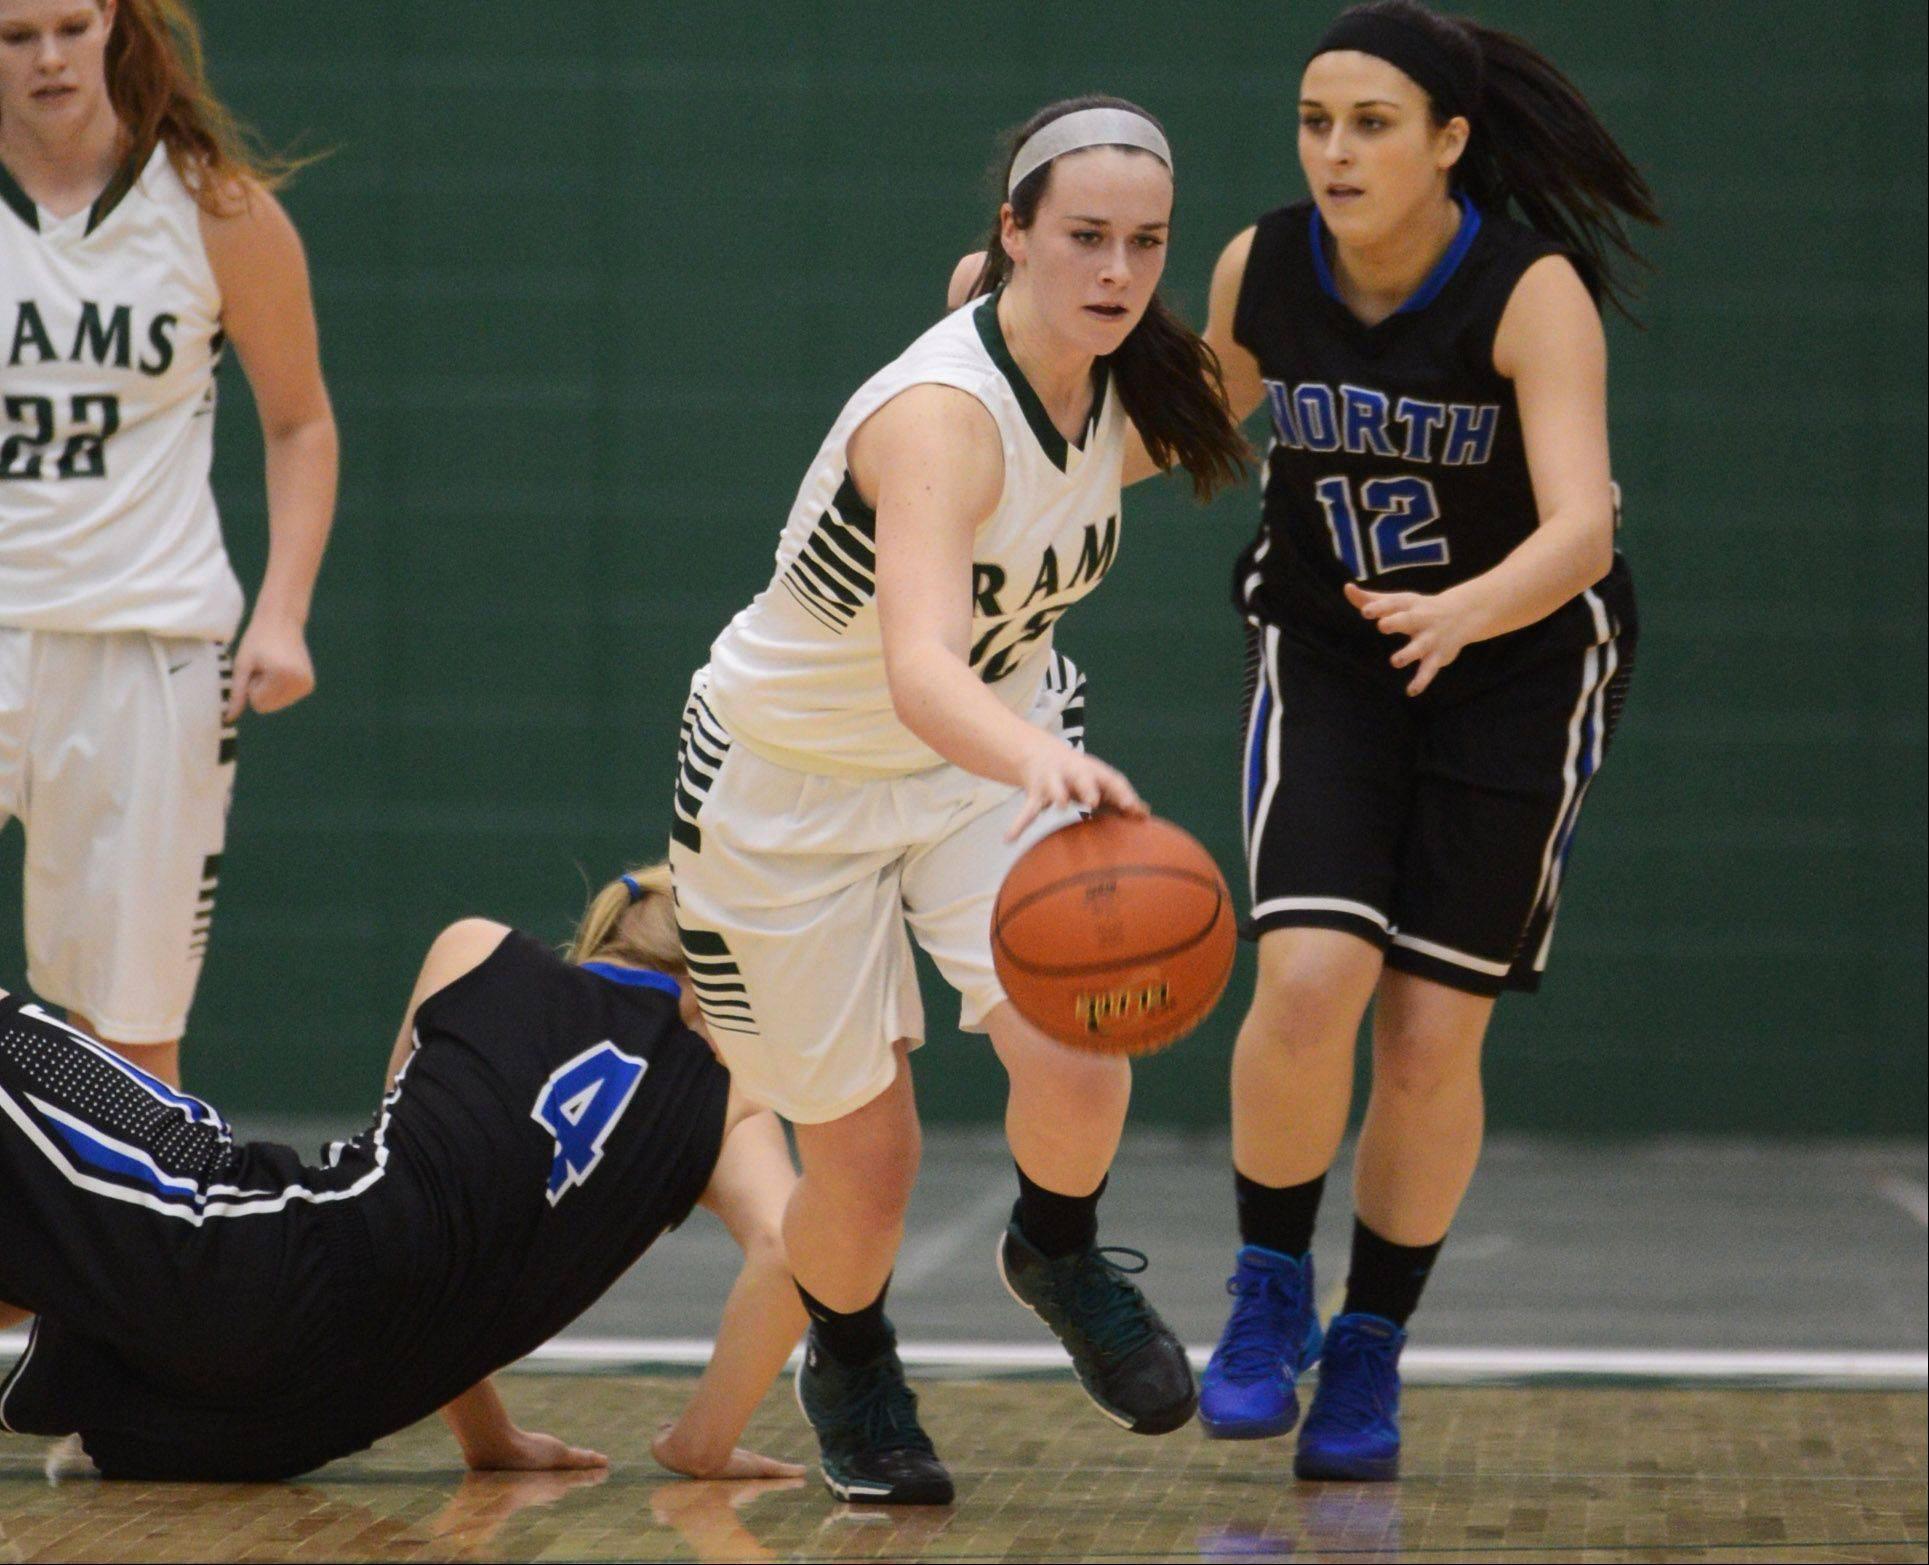 Grayslake Central's Kelly Moroney, center, gets to the loose ball ahead of St. Charles North's Sam Henry Thursday in Grayslake.